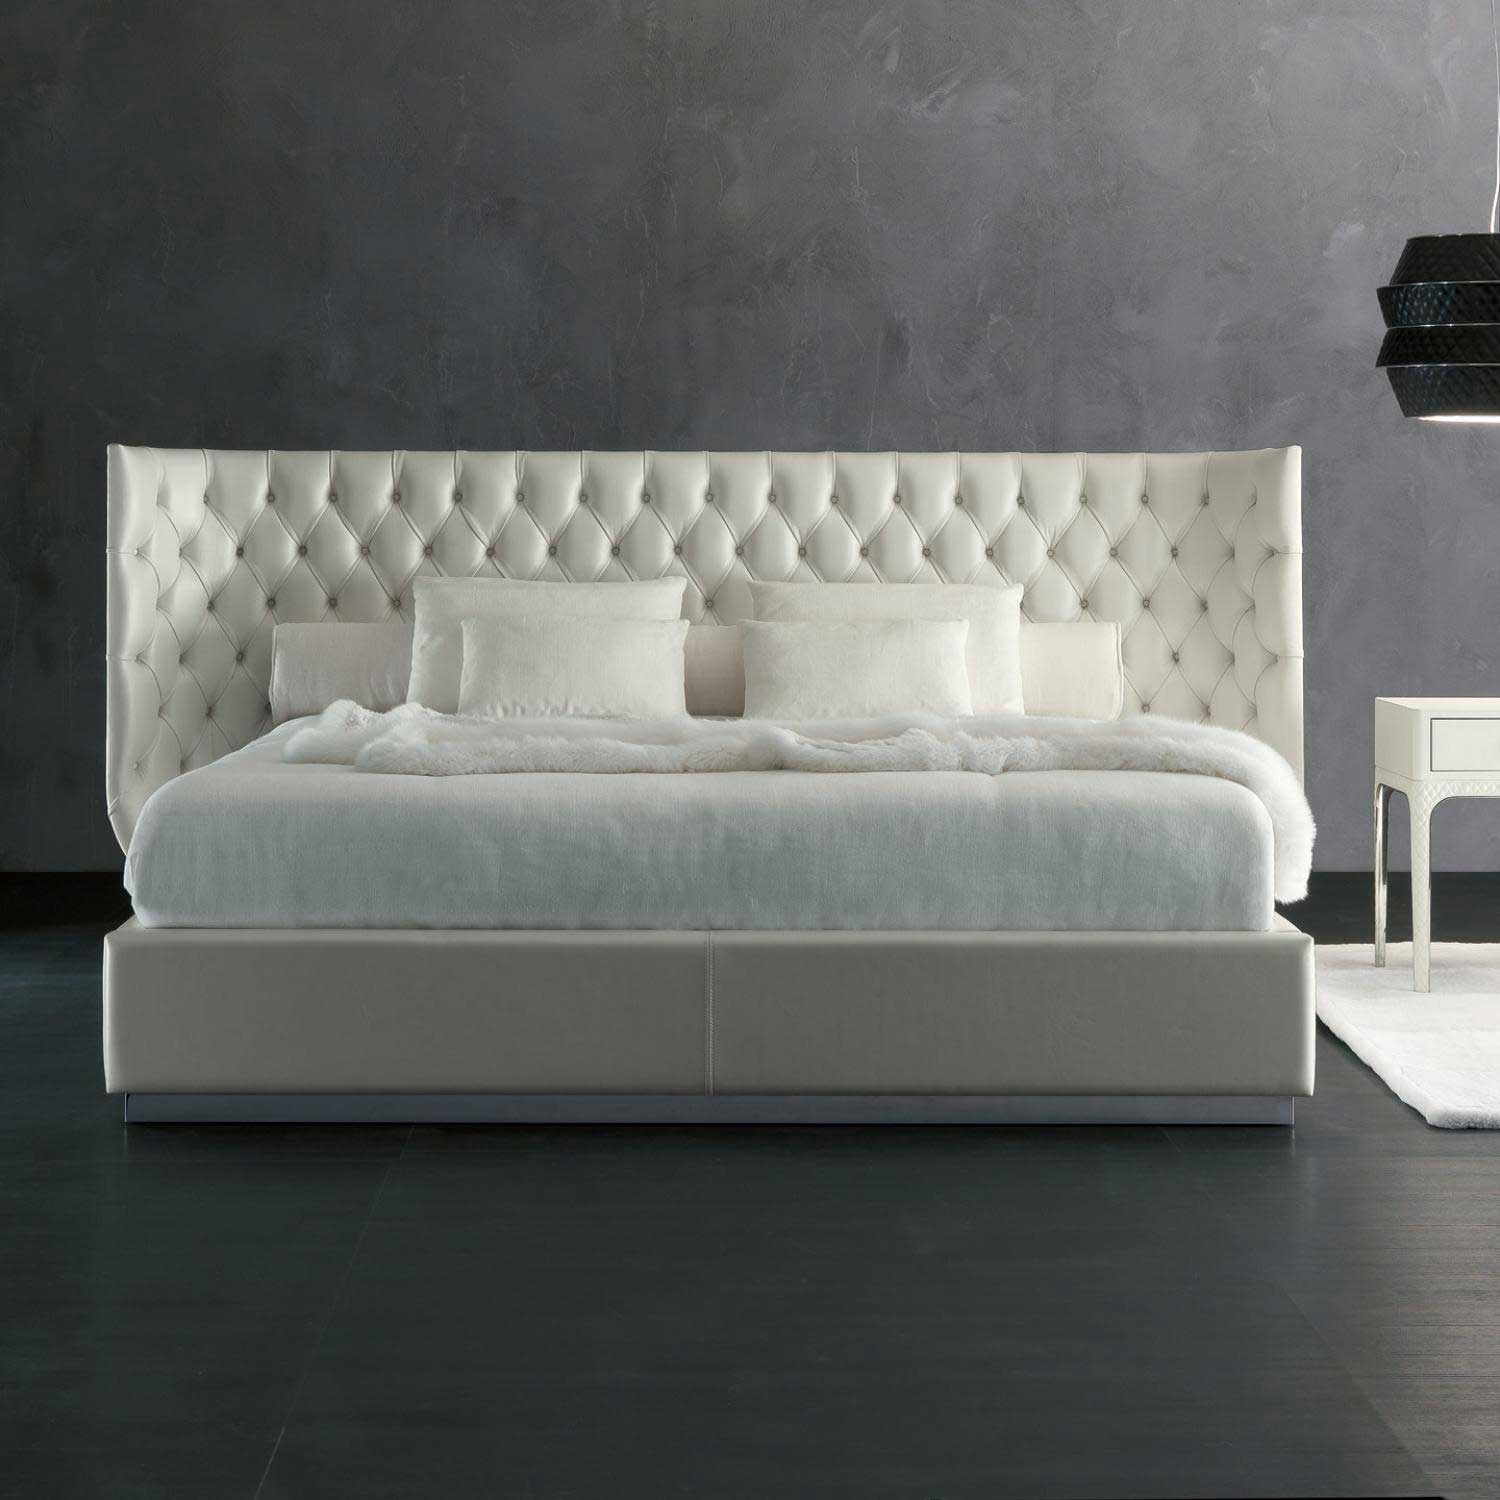 Upholstered Beds Rugiano Italy Wood Furniturez